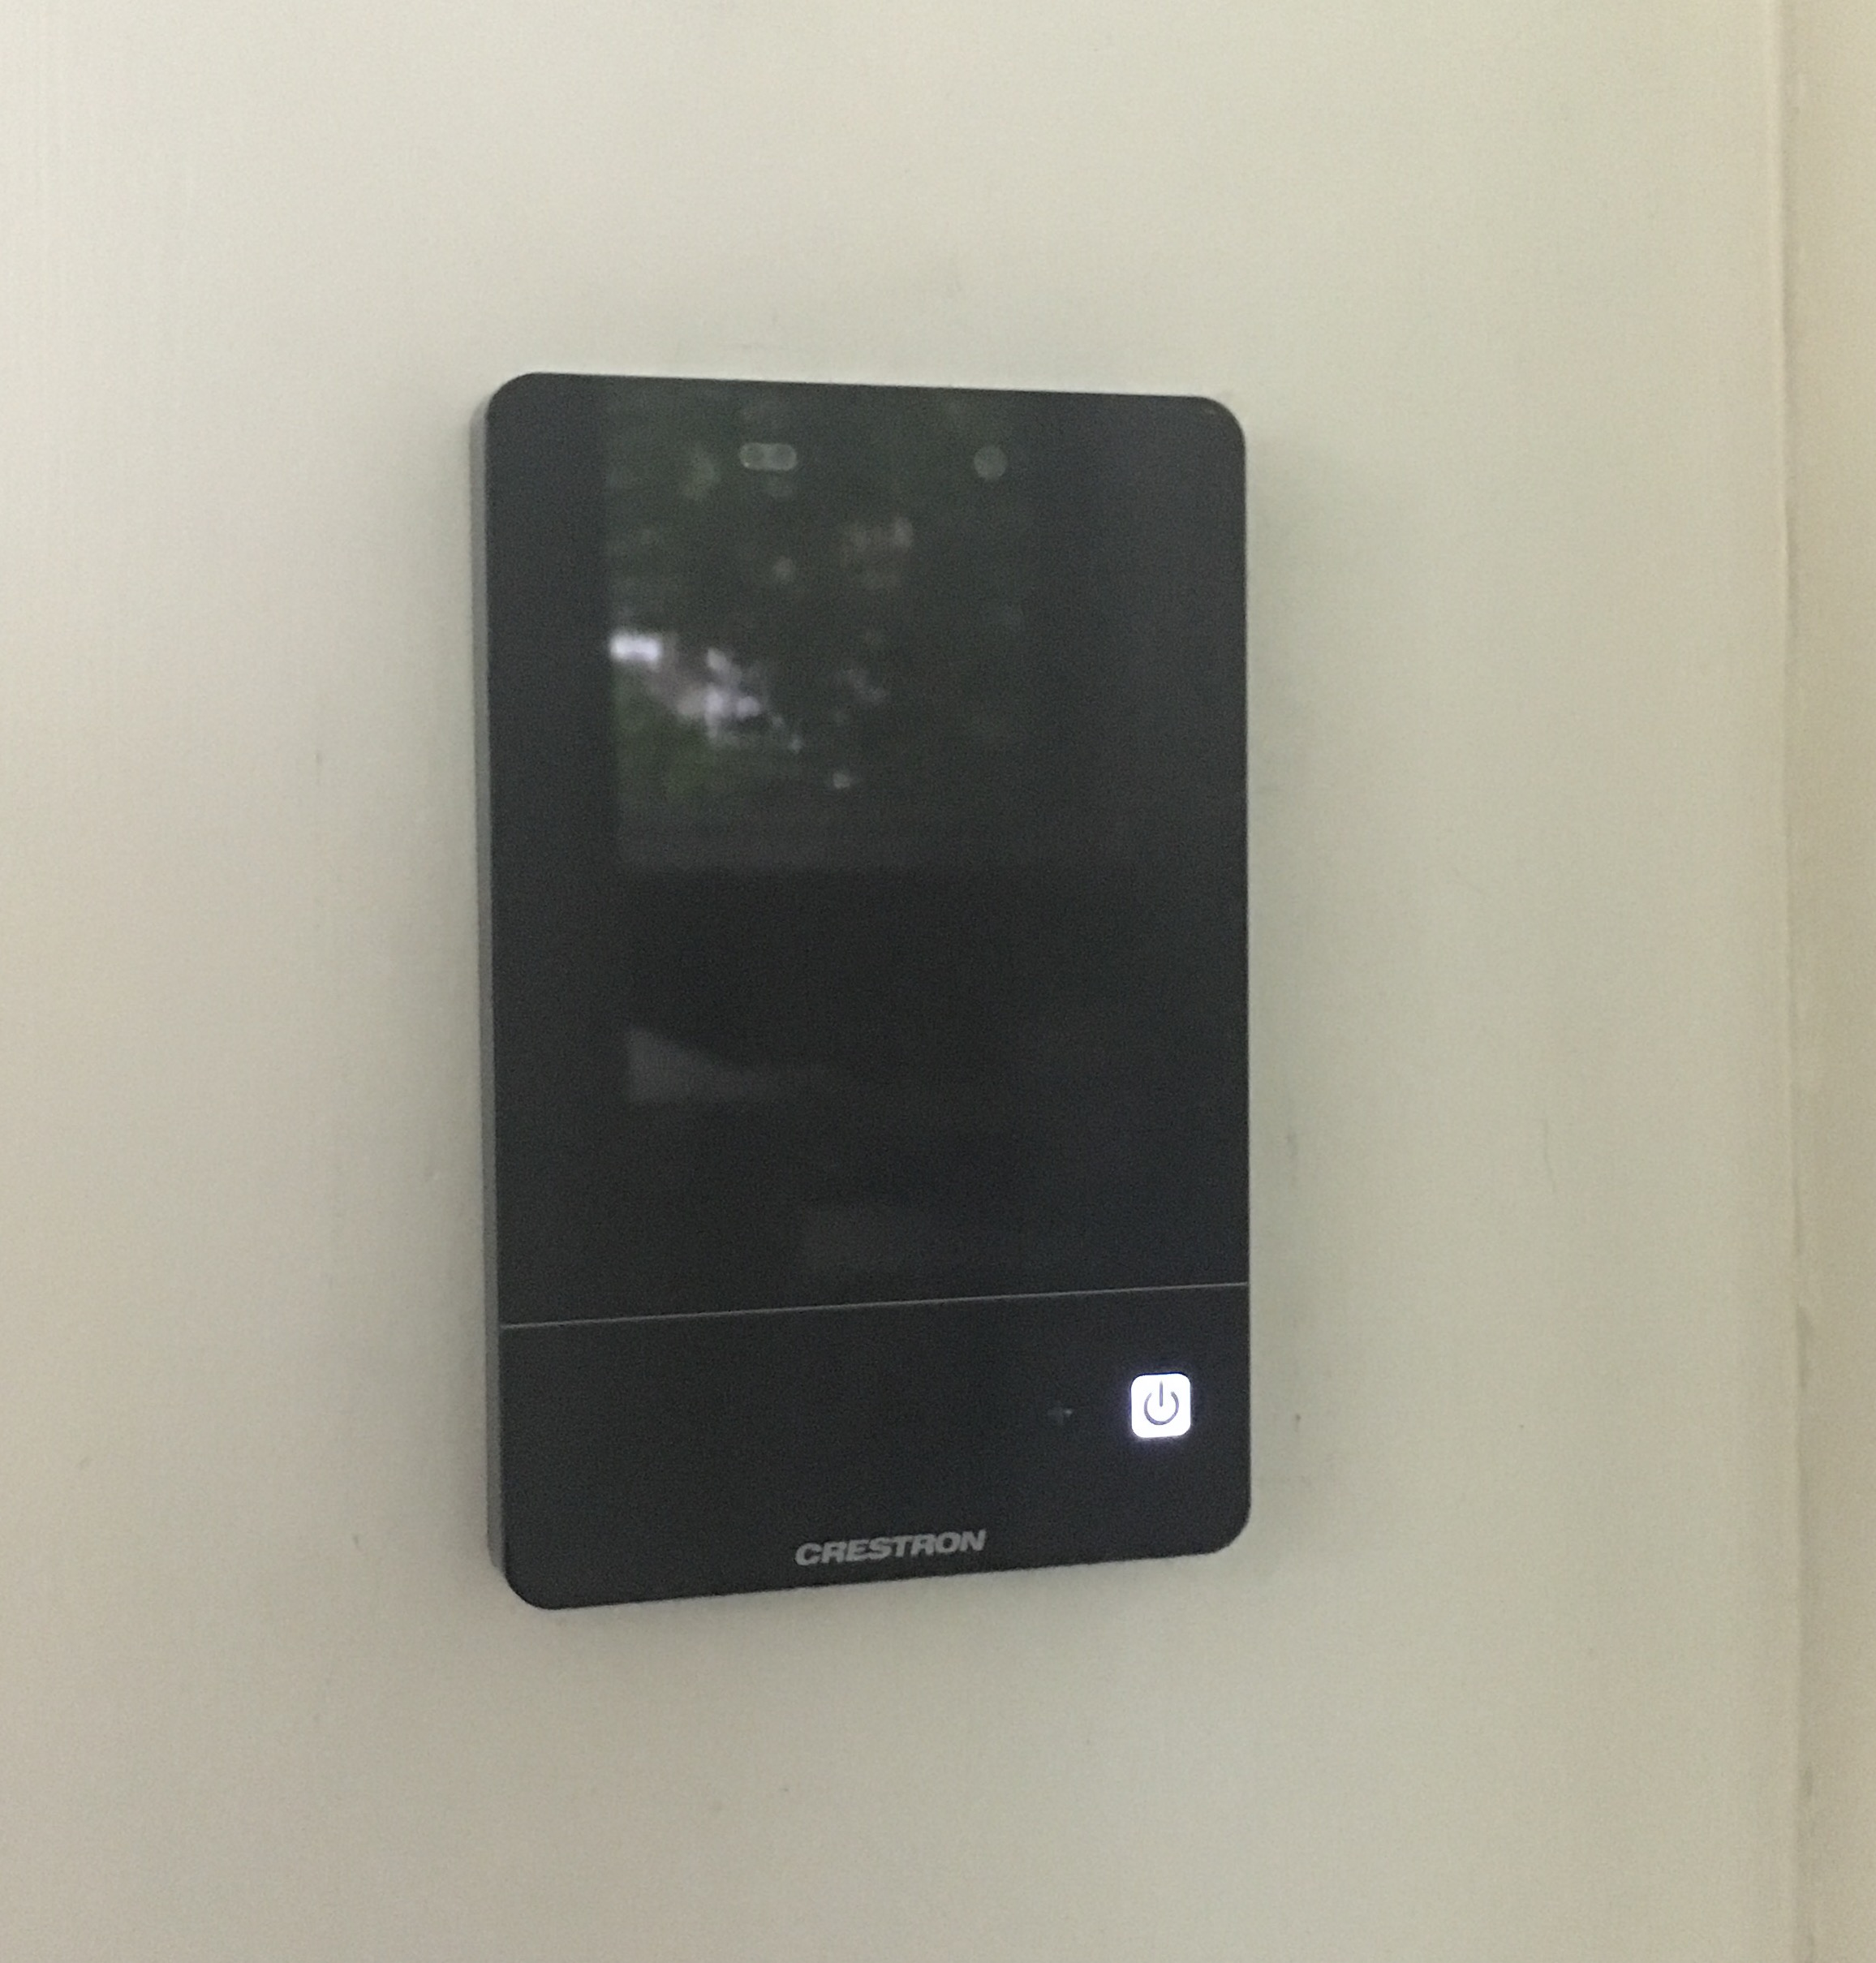 Picture of Crestron touch panel located below the flat panel display.